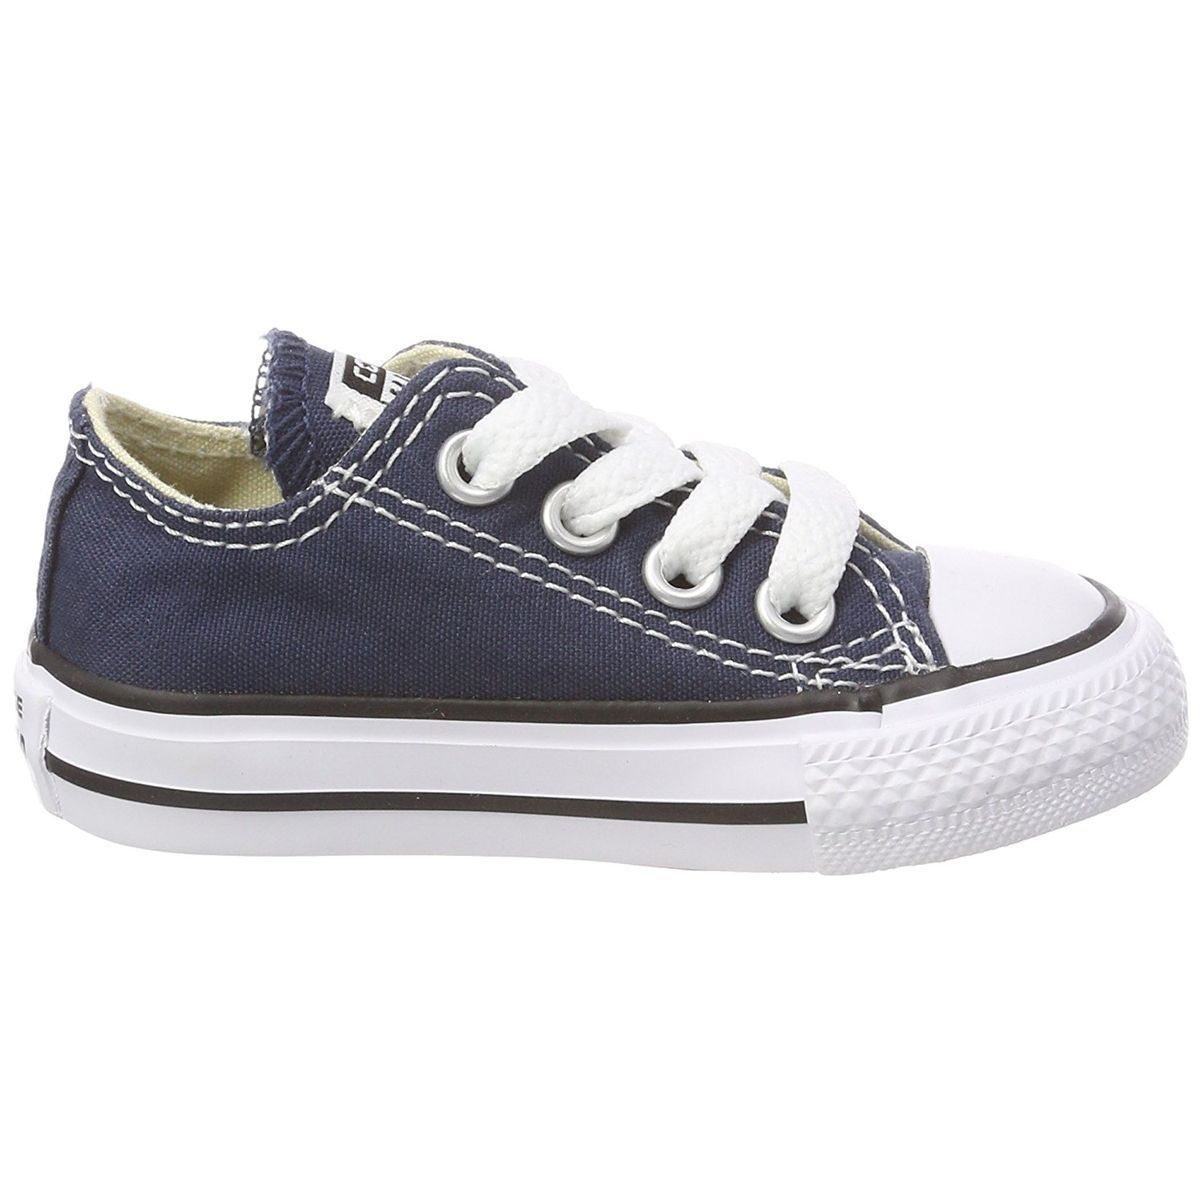 JEXPLORER HIGH CTAS ALL STAR OX:BLEU/TOILE/TOILE/CAOUTCHOUC/Bleu